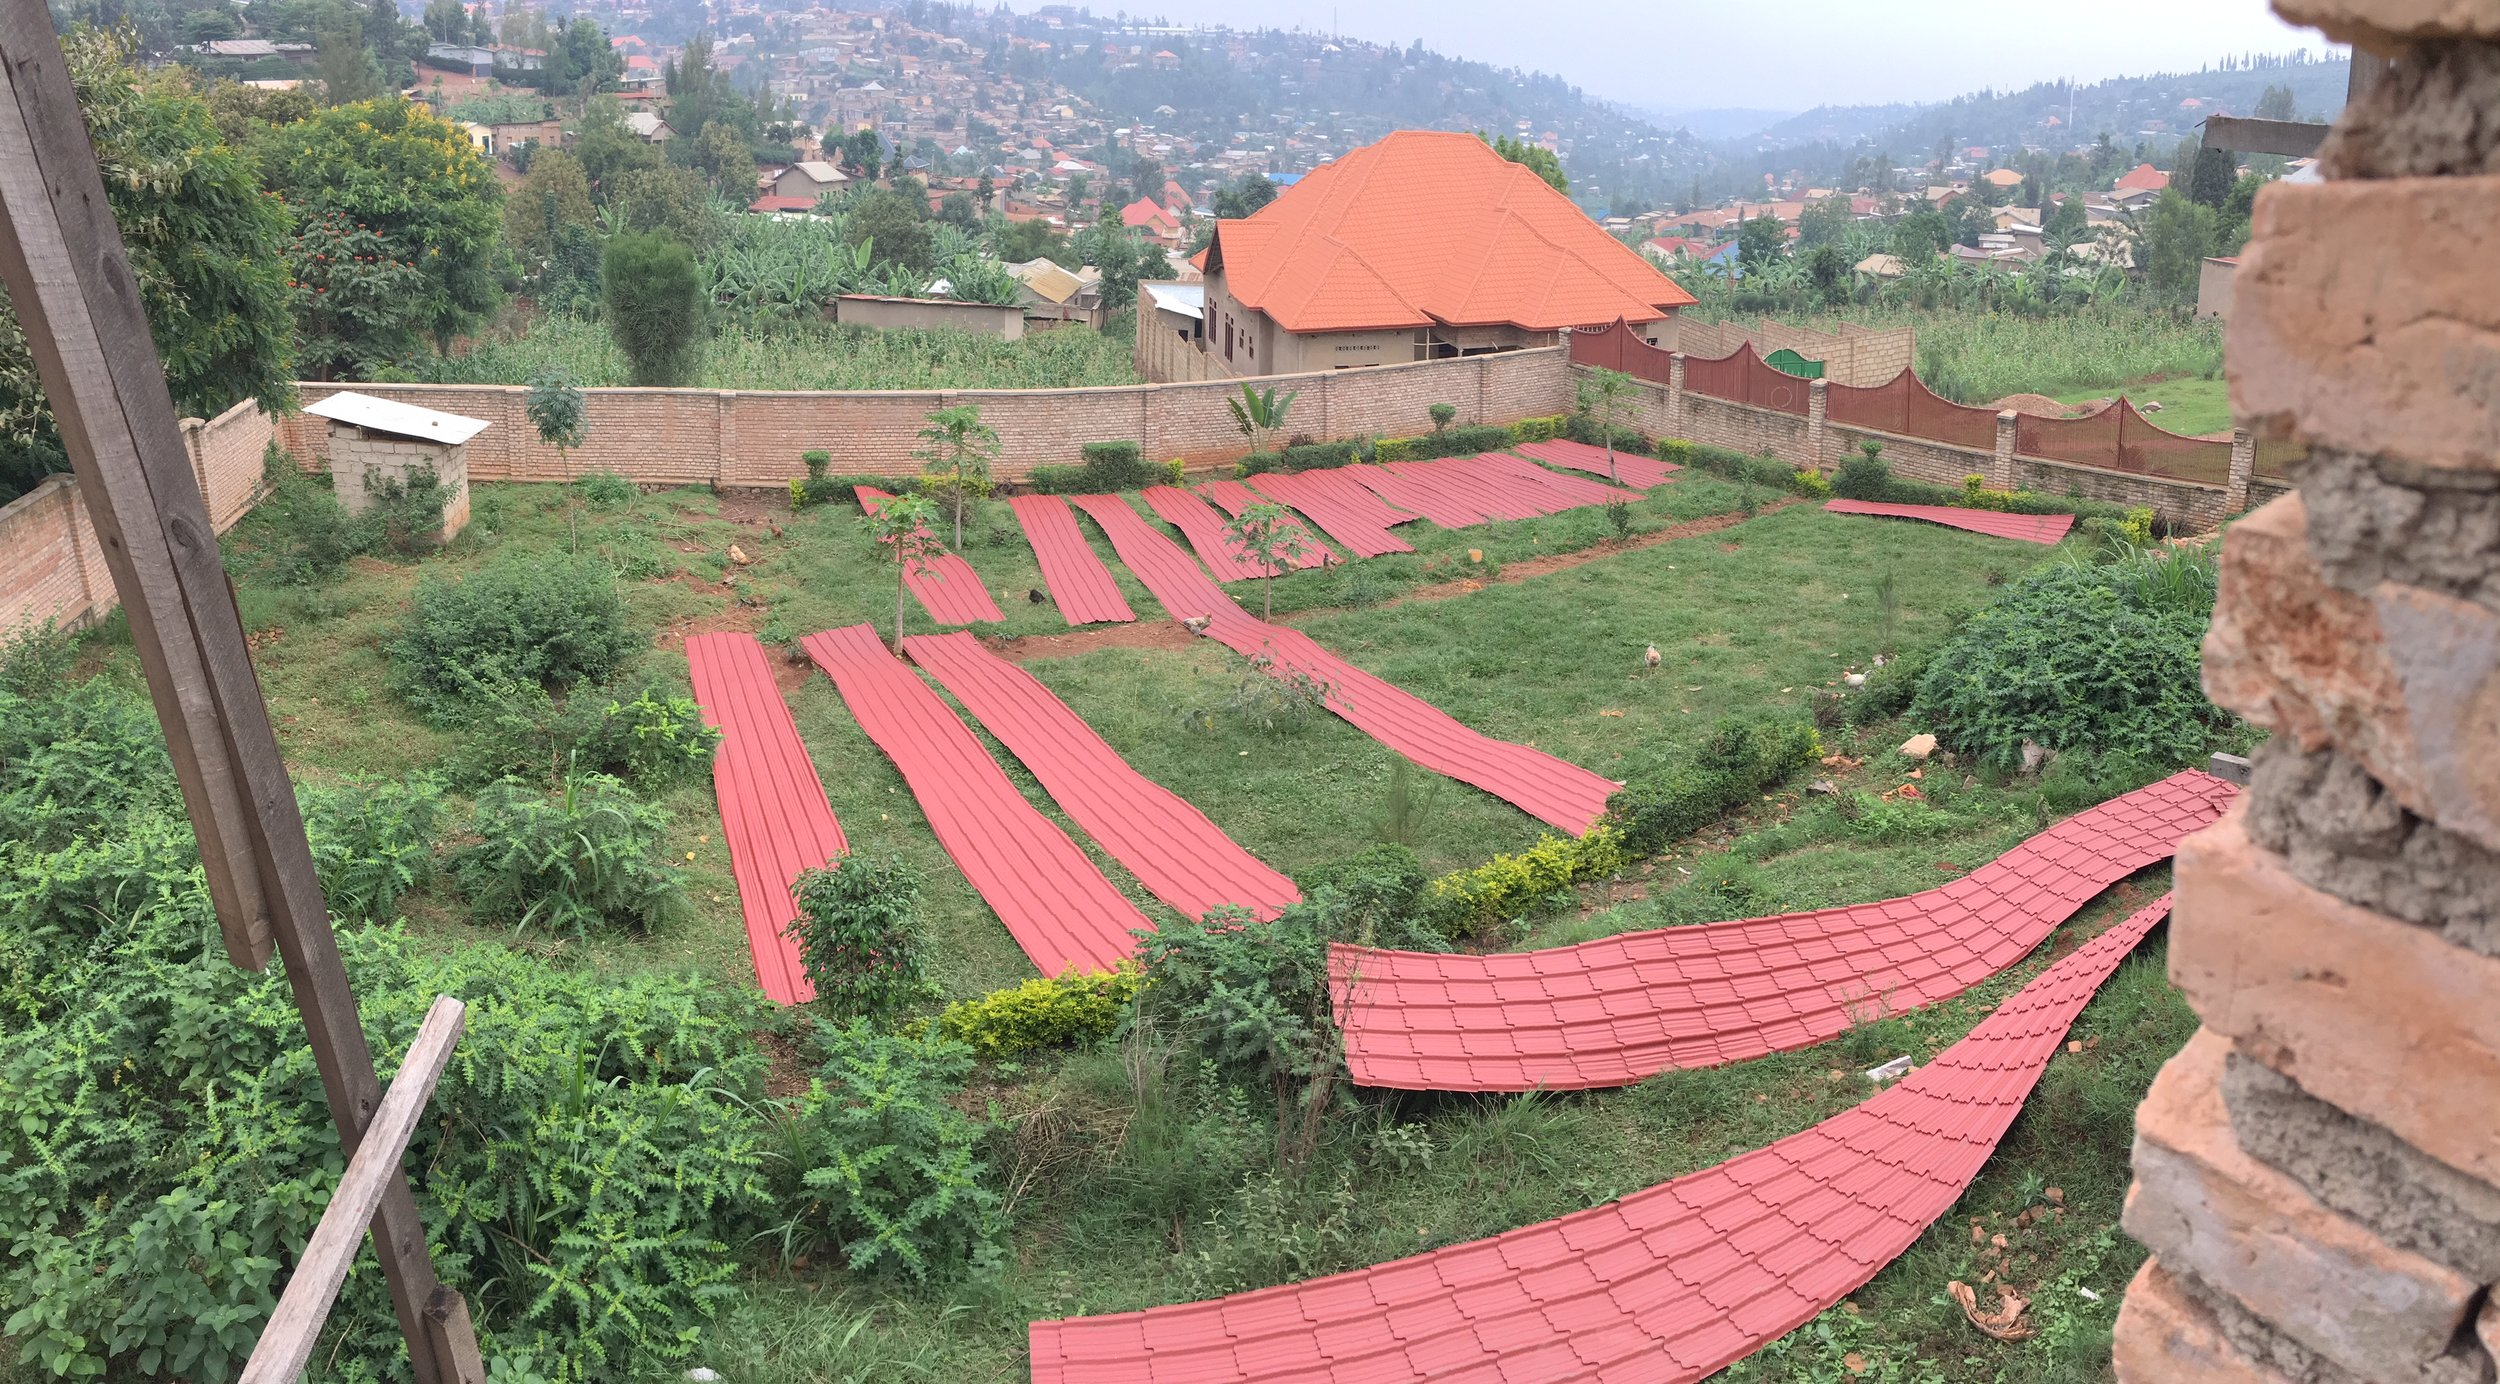 Spreading out the metal roofing sheets on the lawn